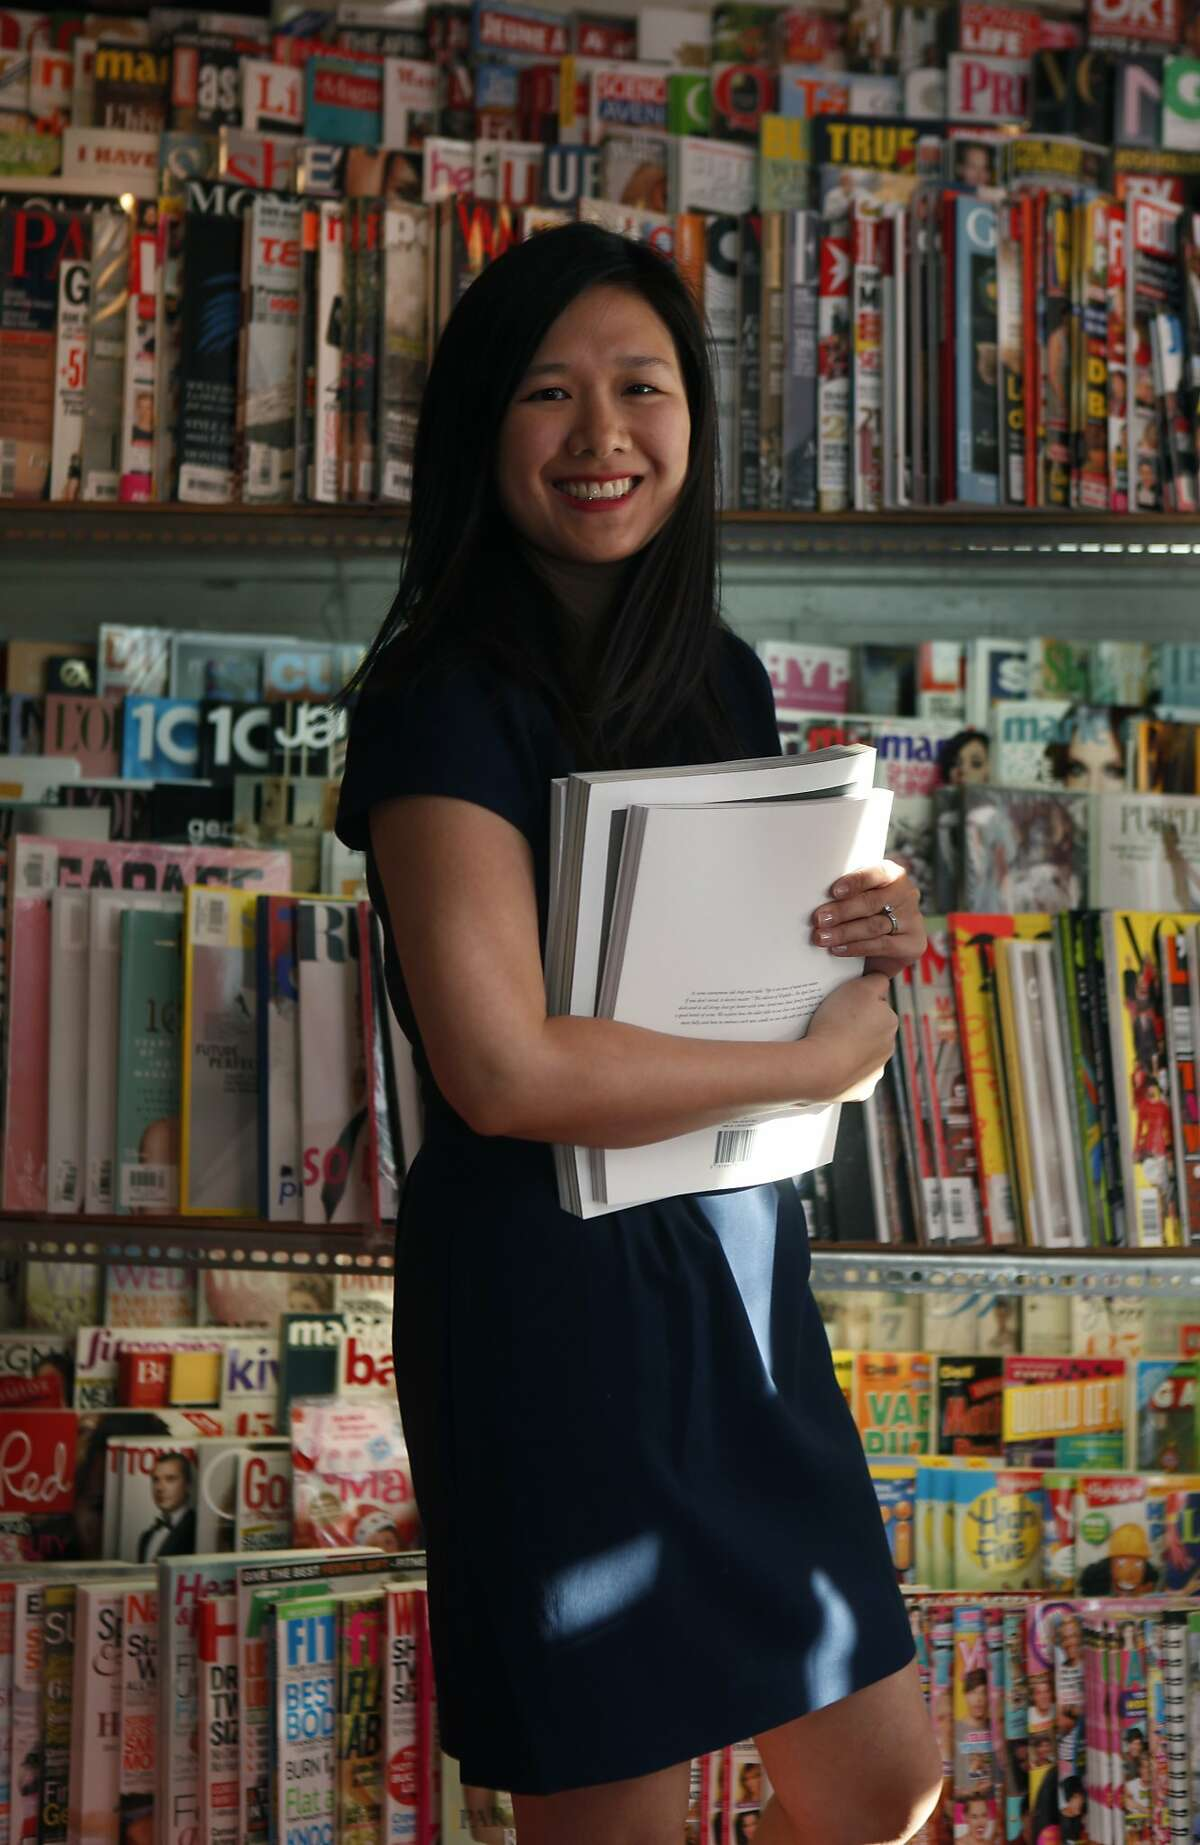 Connie Wong shows Issues news stand in Oakland, Calif., on Thursday, January 9, 2014.